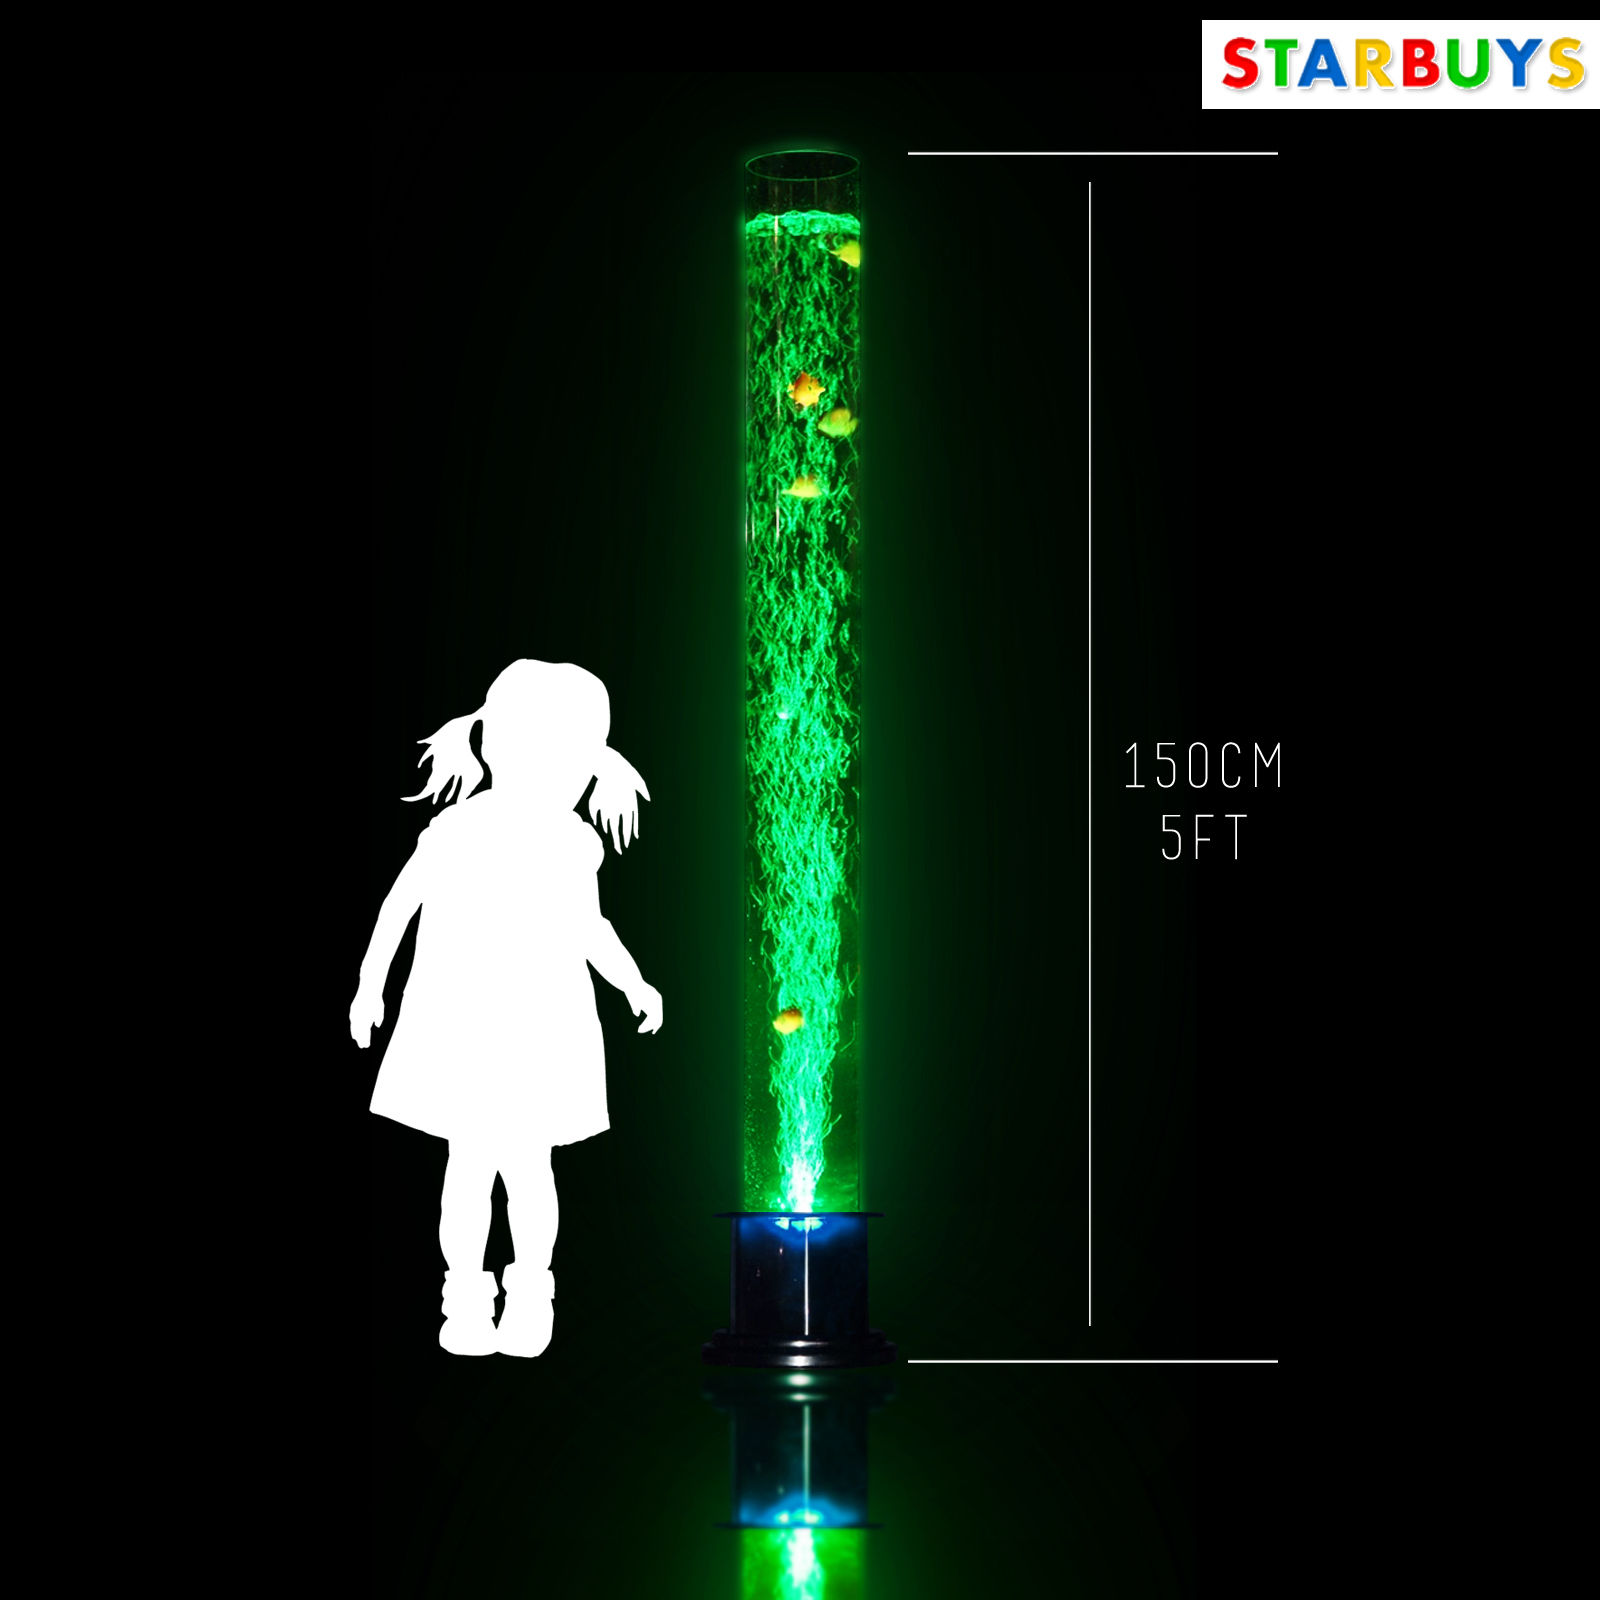 Large 150cm 5ft Bubble Fish Water Tube Lamp Changing Led